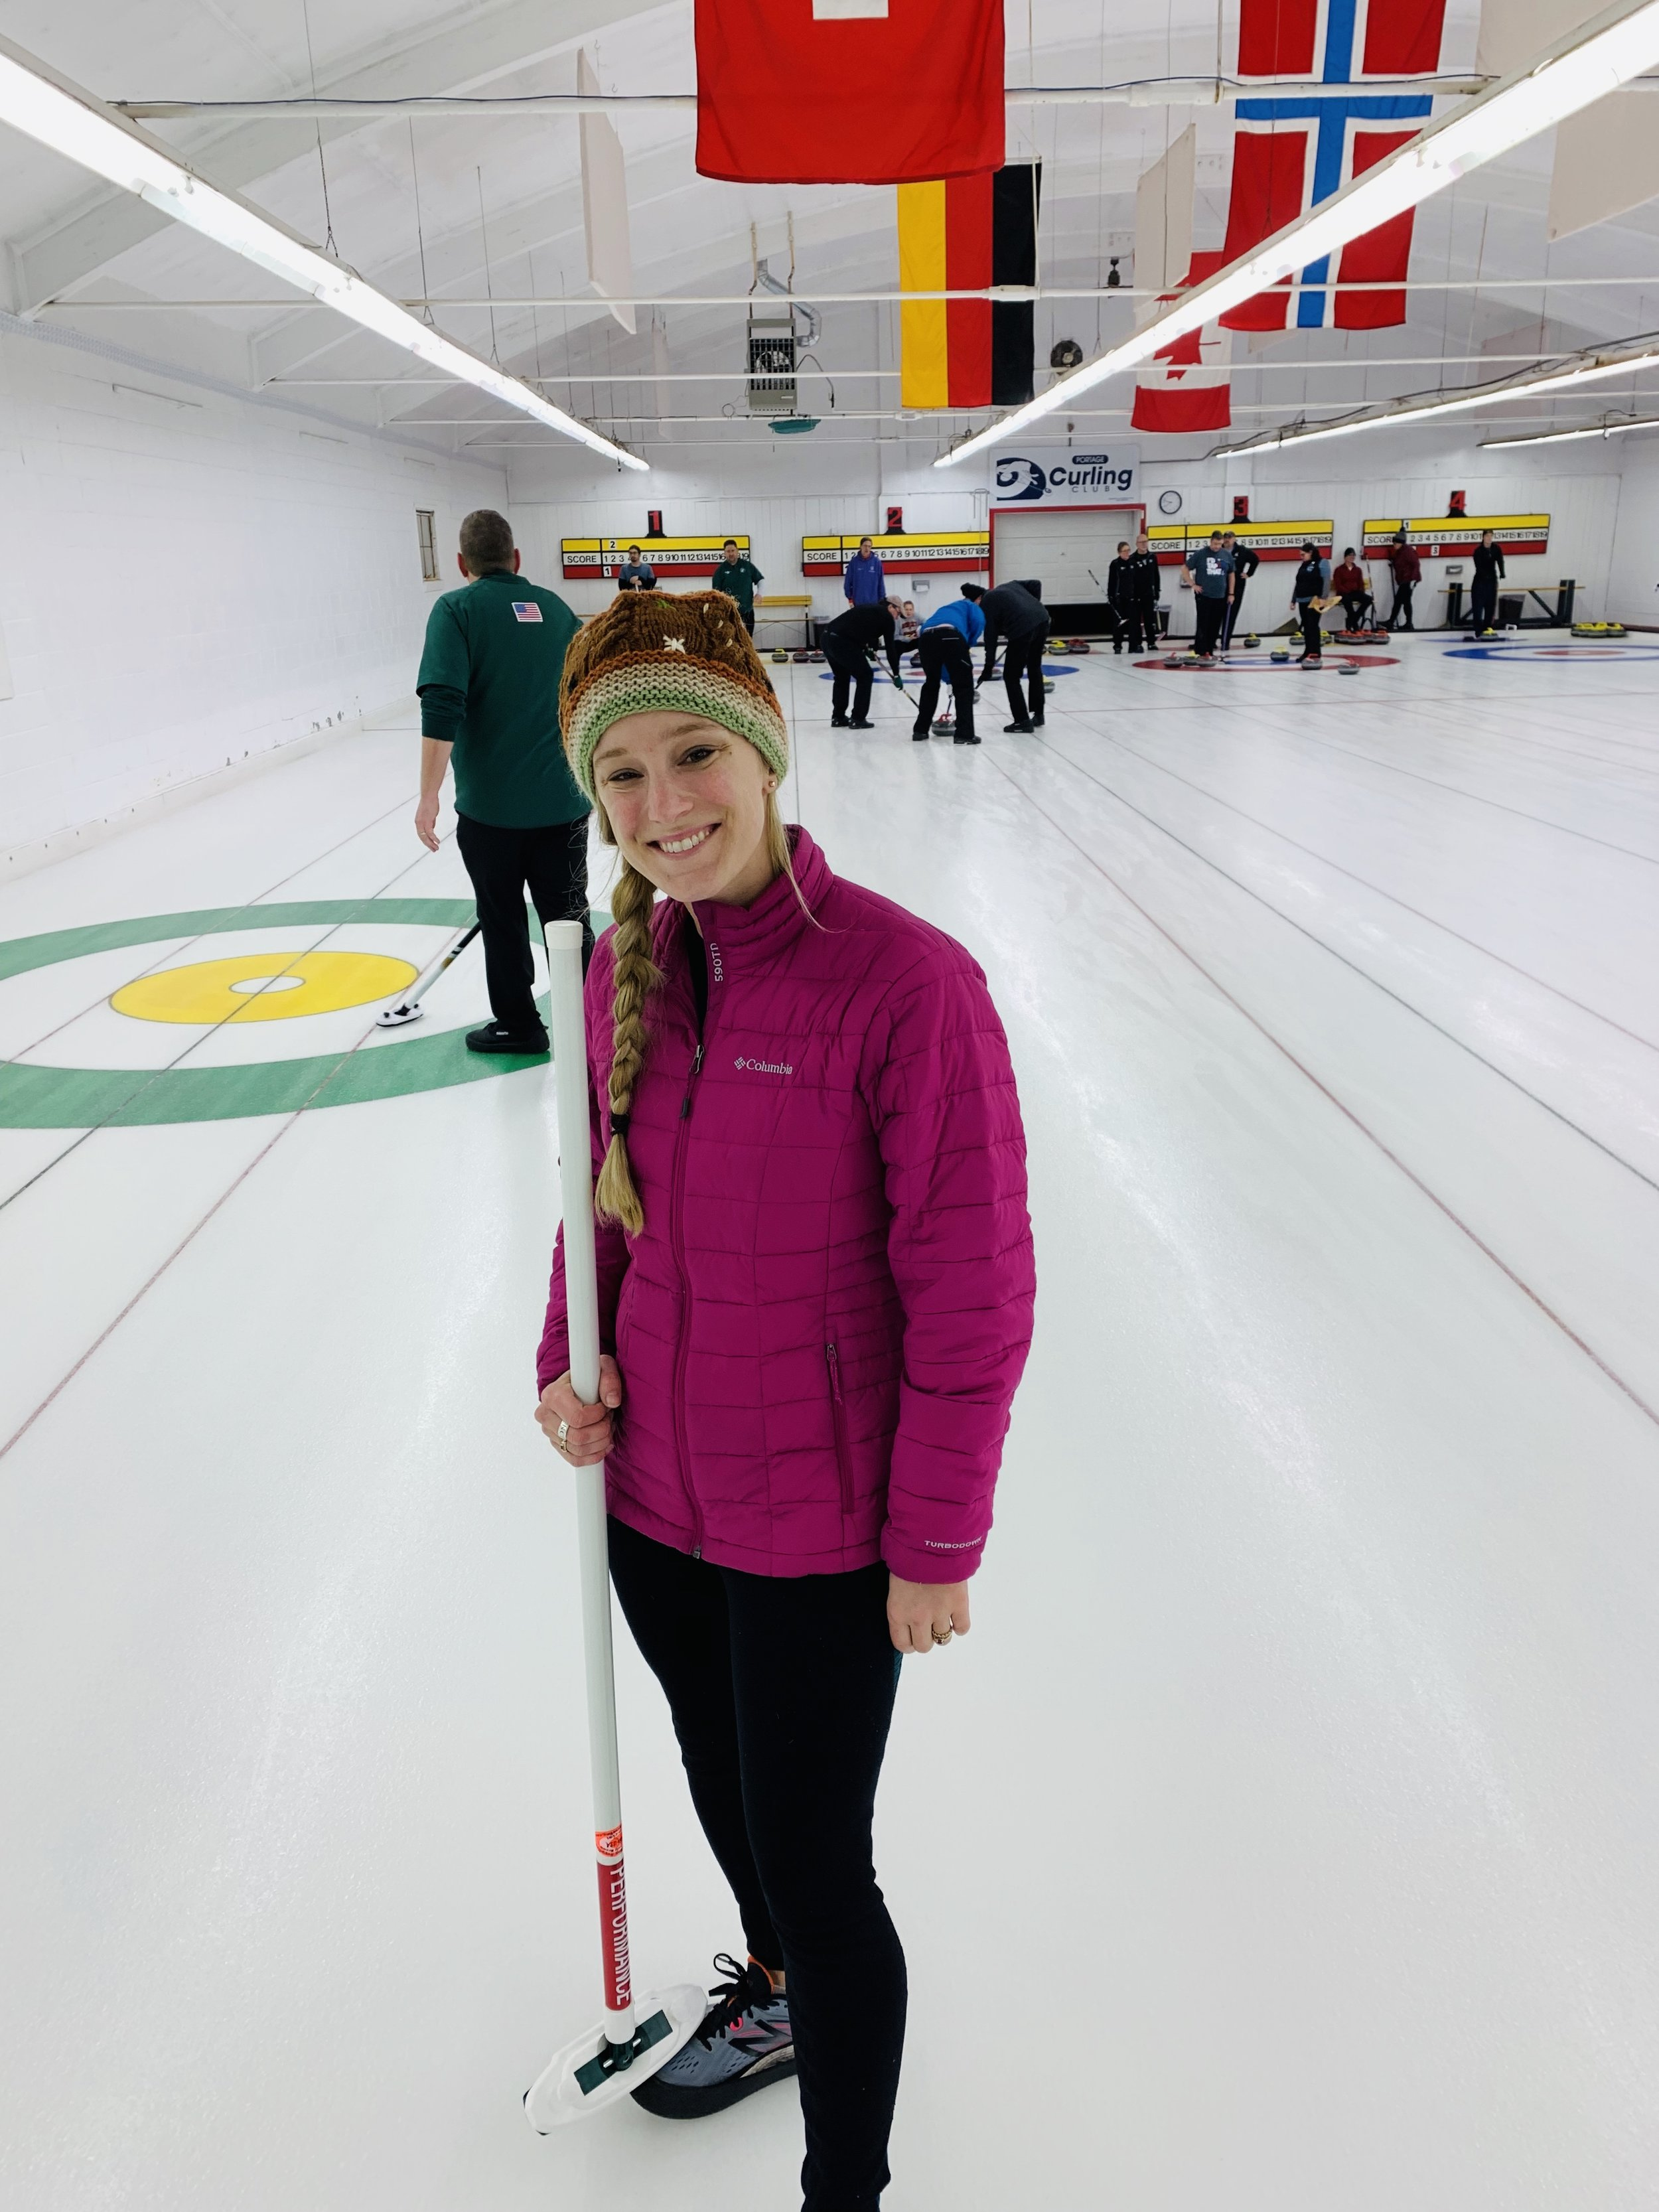 Katie zupancic wymer - Katie started curling in the spring of 2018 after discovering the sport during the Winter Olympics in PyeongChang. After completing a Learn to Curl clinic hosted by the Curling Club of Rochester, Katie convinced fellow new Minnesotans to sign up for the first CCR Instructional League. Katie moved to Rochester in 2016, and when not exploring the Bold North, manages event marketing strategy and sponsorship for national nonprofits.CONTACT KATIE